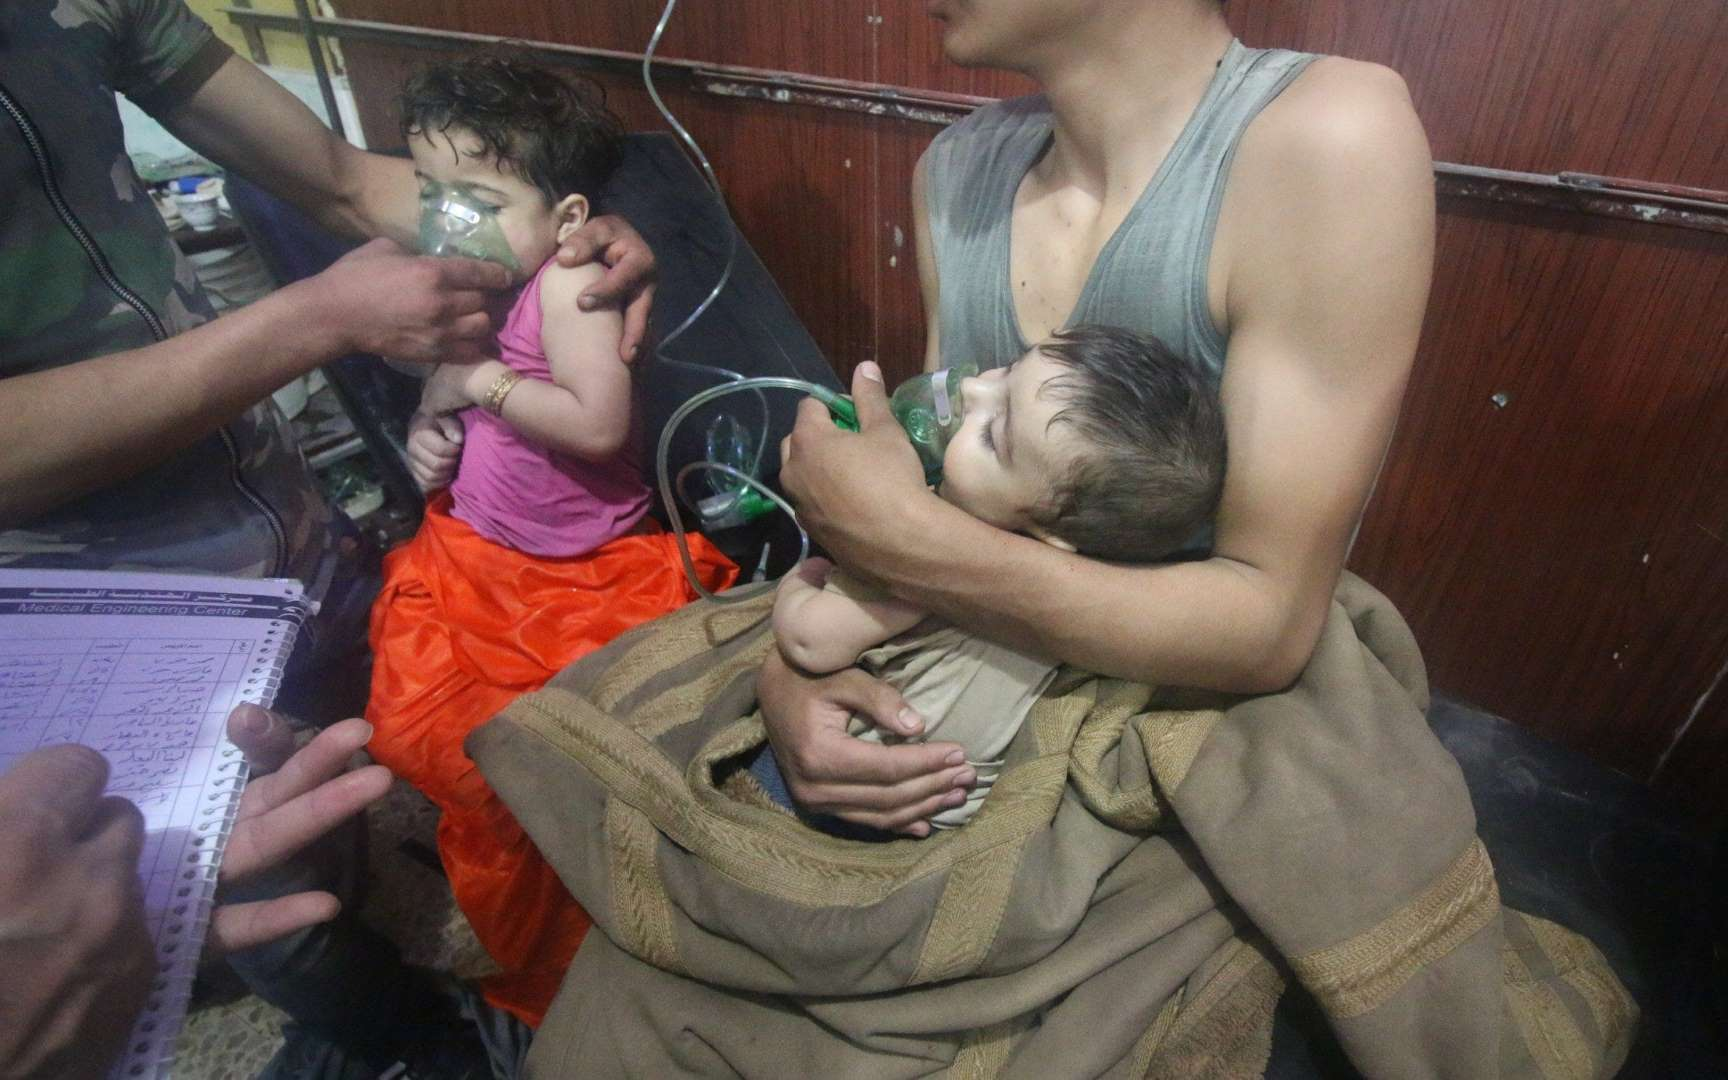 At least 55 gassed to death in Ghouta chemical attack